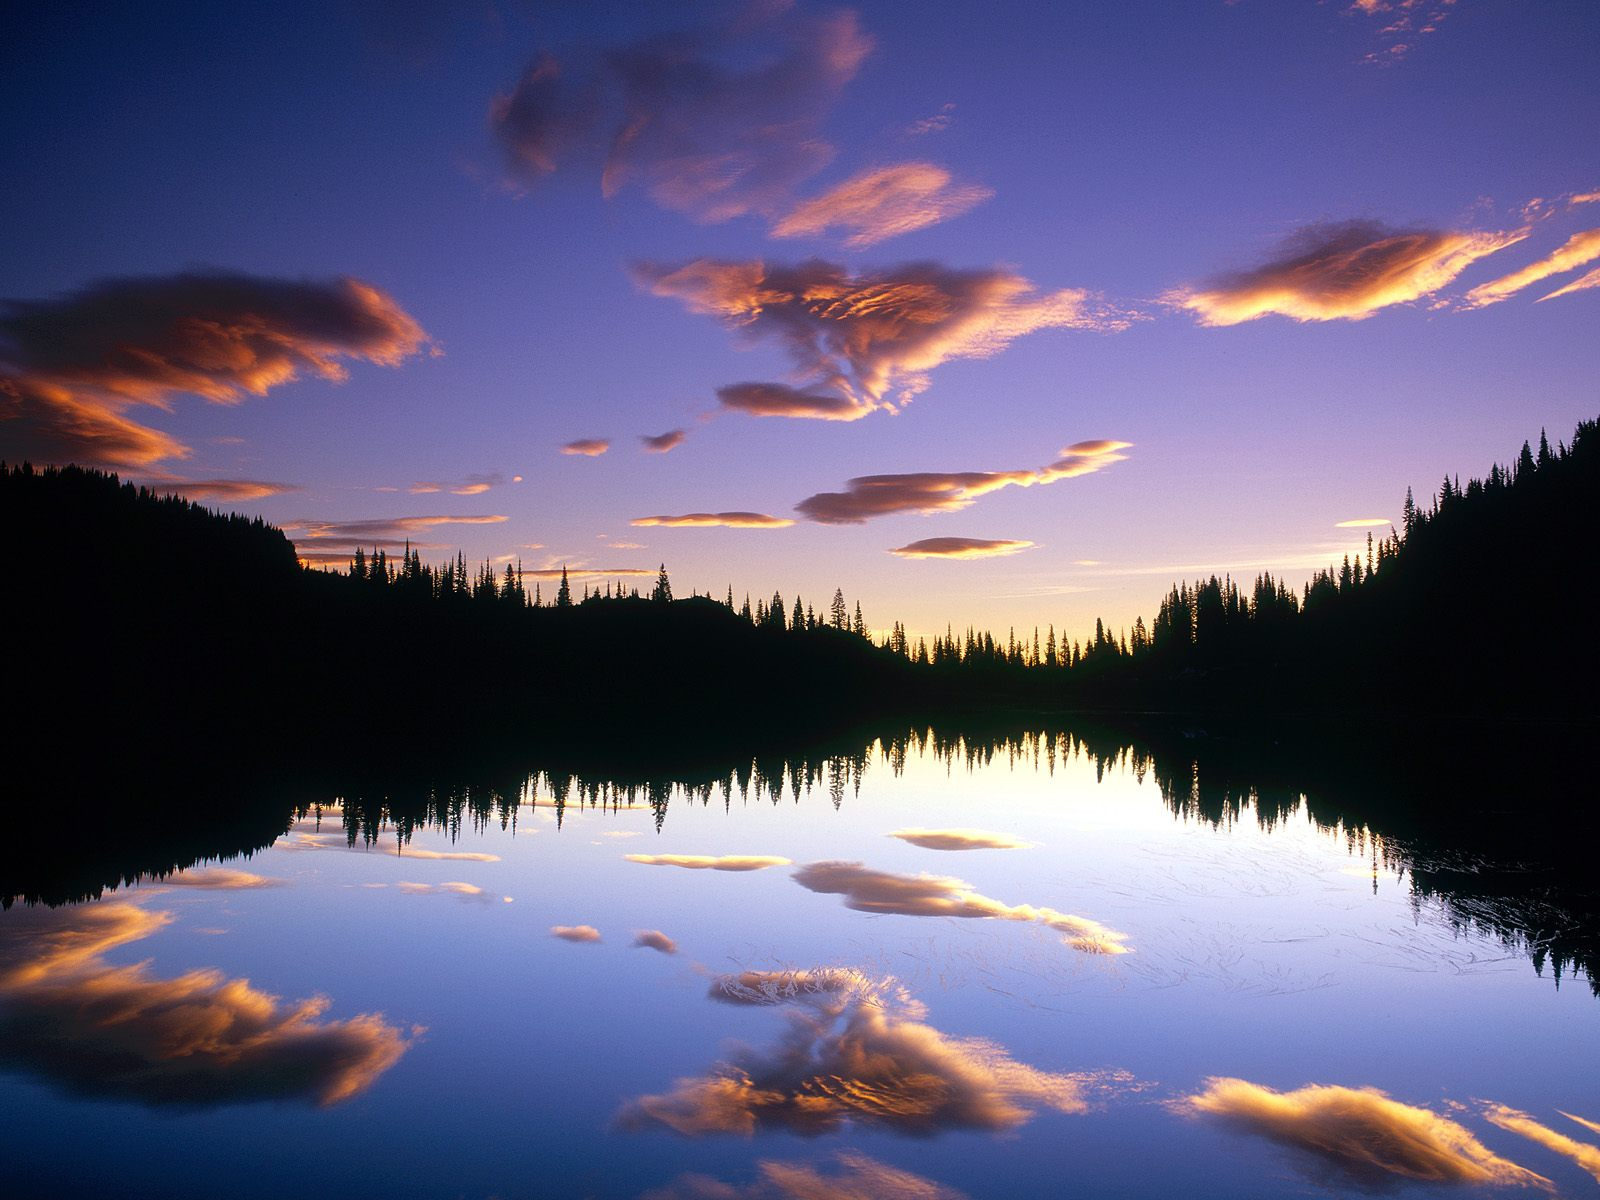 lake-reflections-in-water